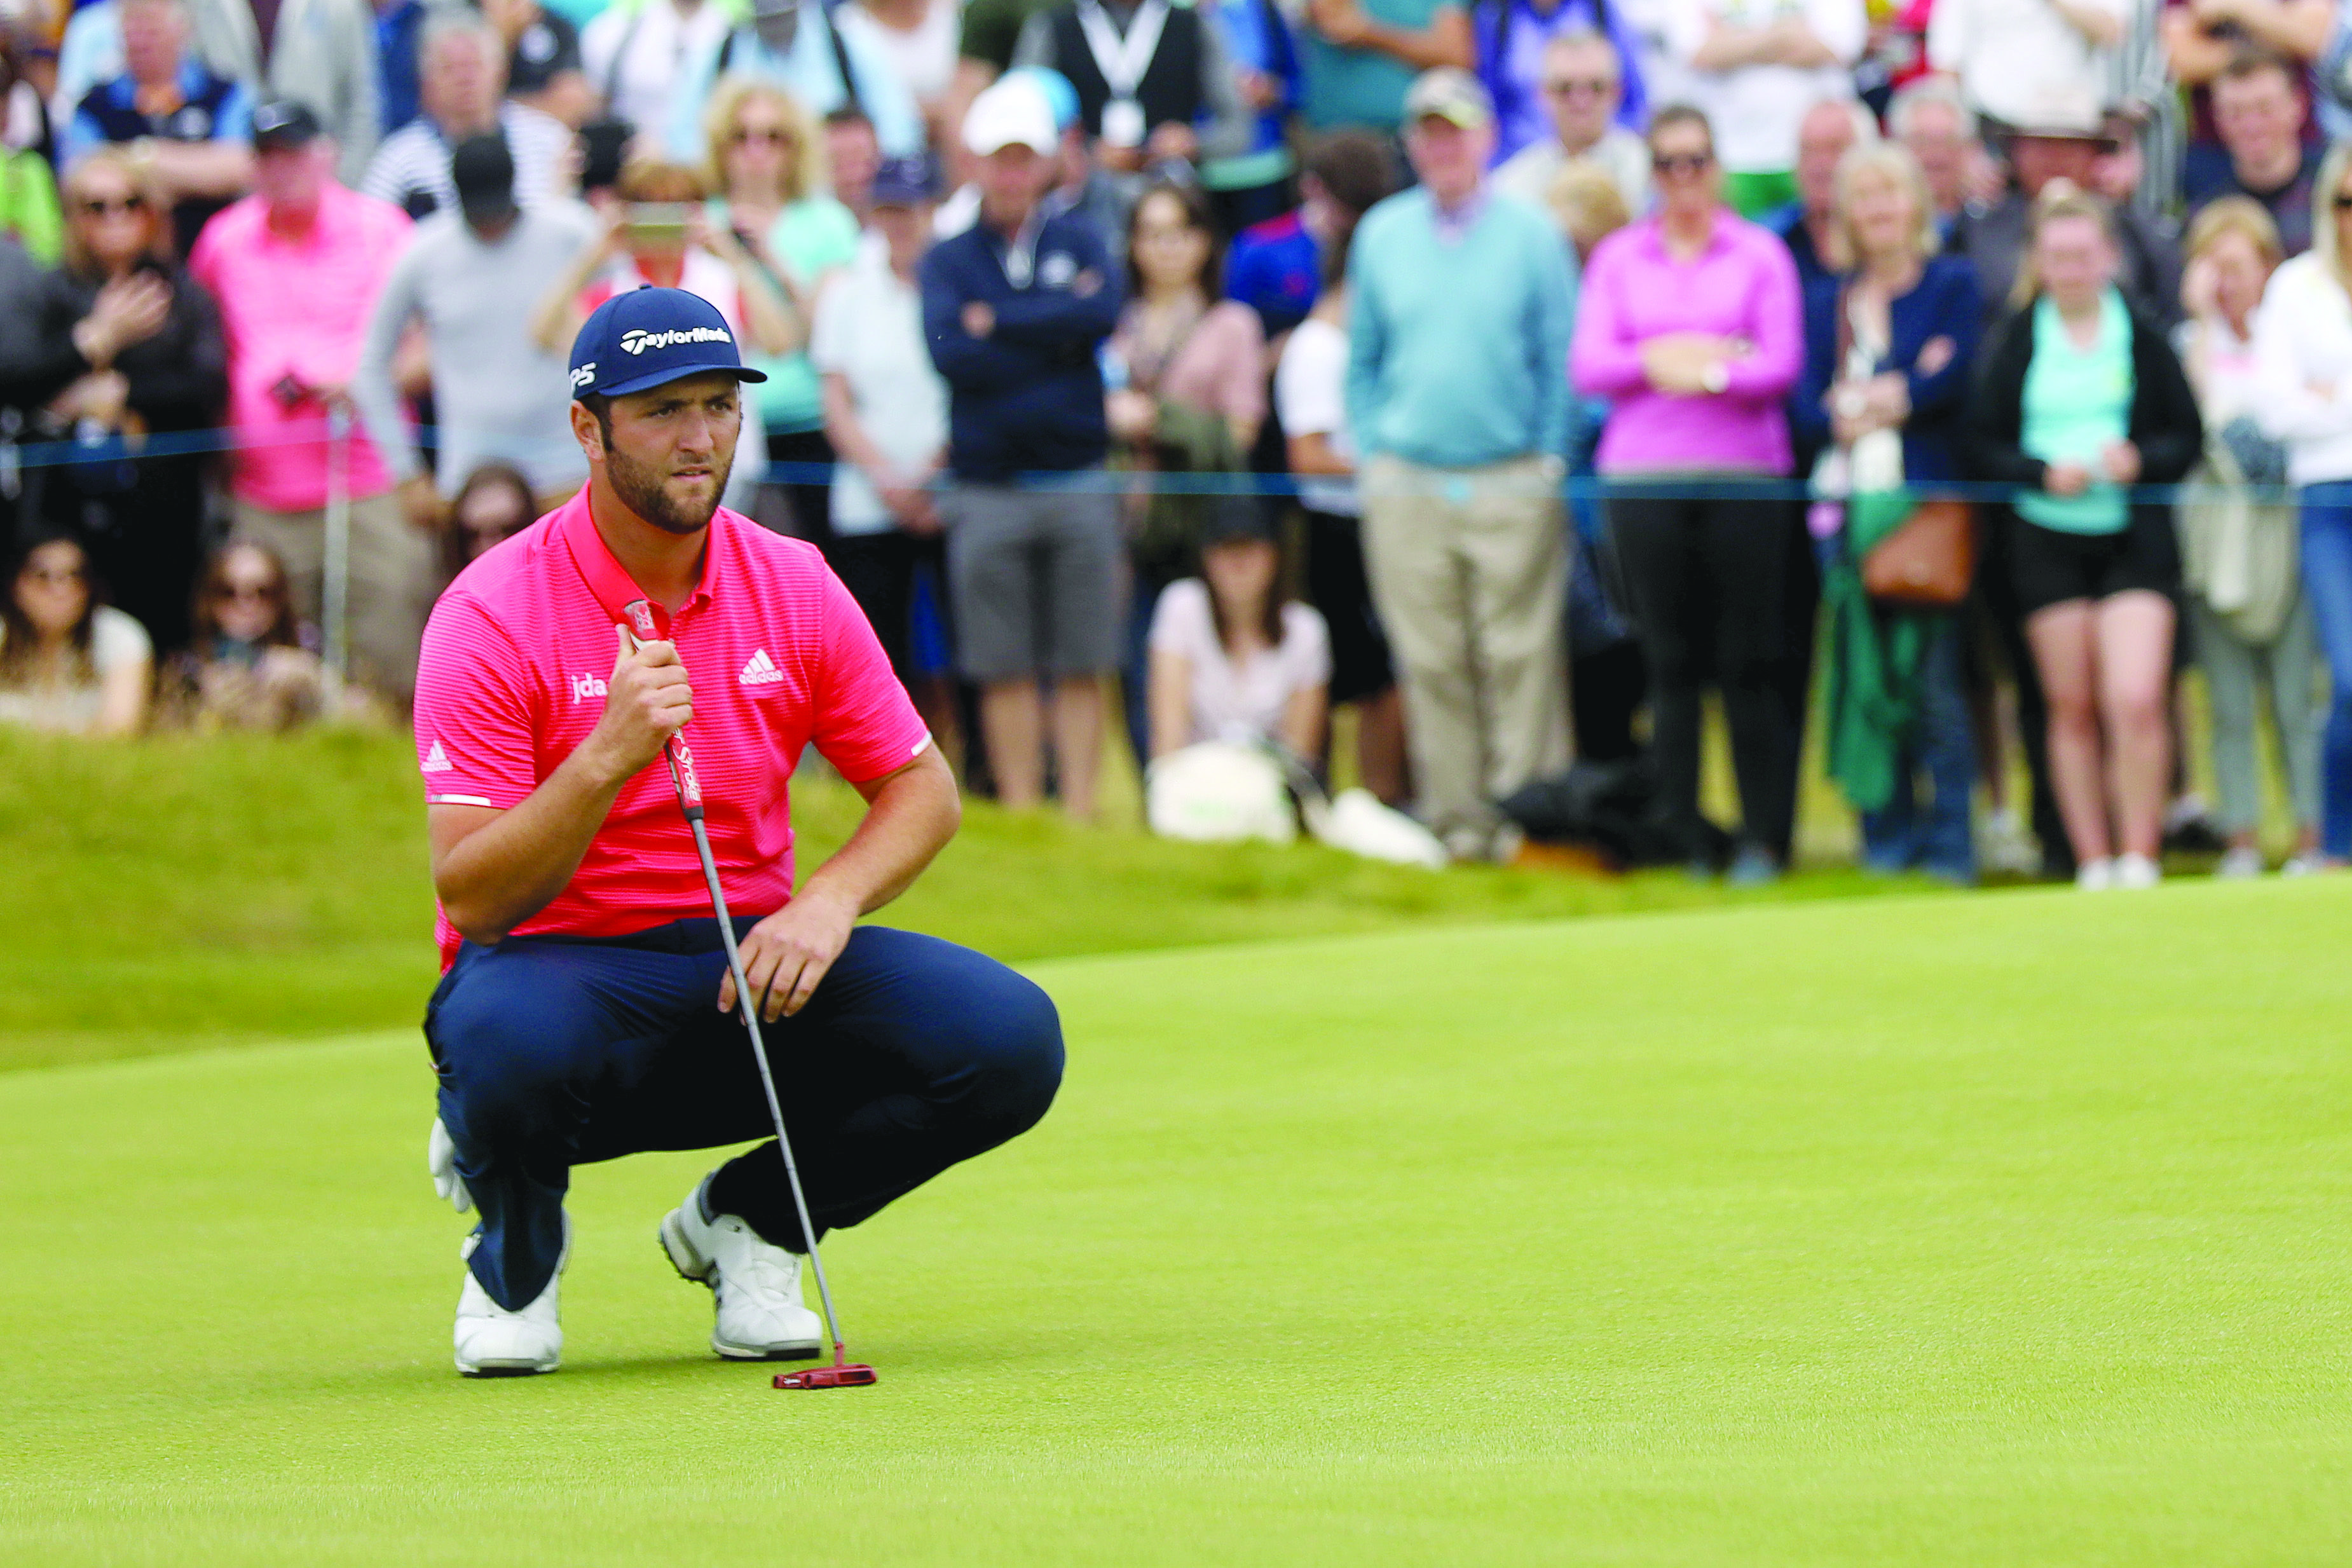 Big-hitting Spaniard Jon Rahm could be in line to break his Major duck at Augusta this week